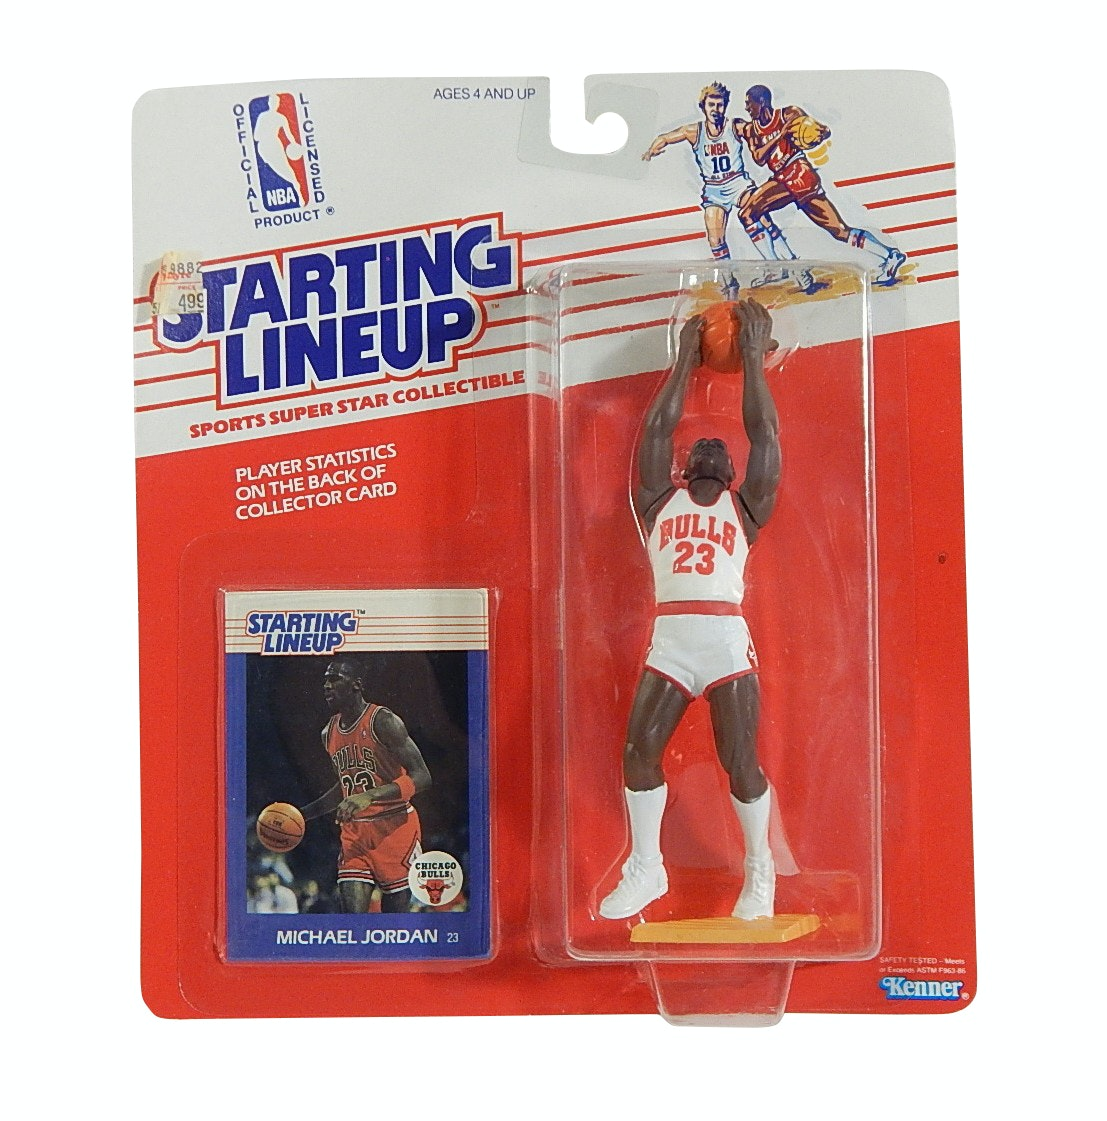 1988 Michael Jordan Chicago Bulls Rookie Starting Lineup Action Figure and Card